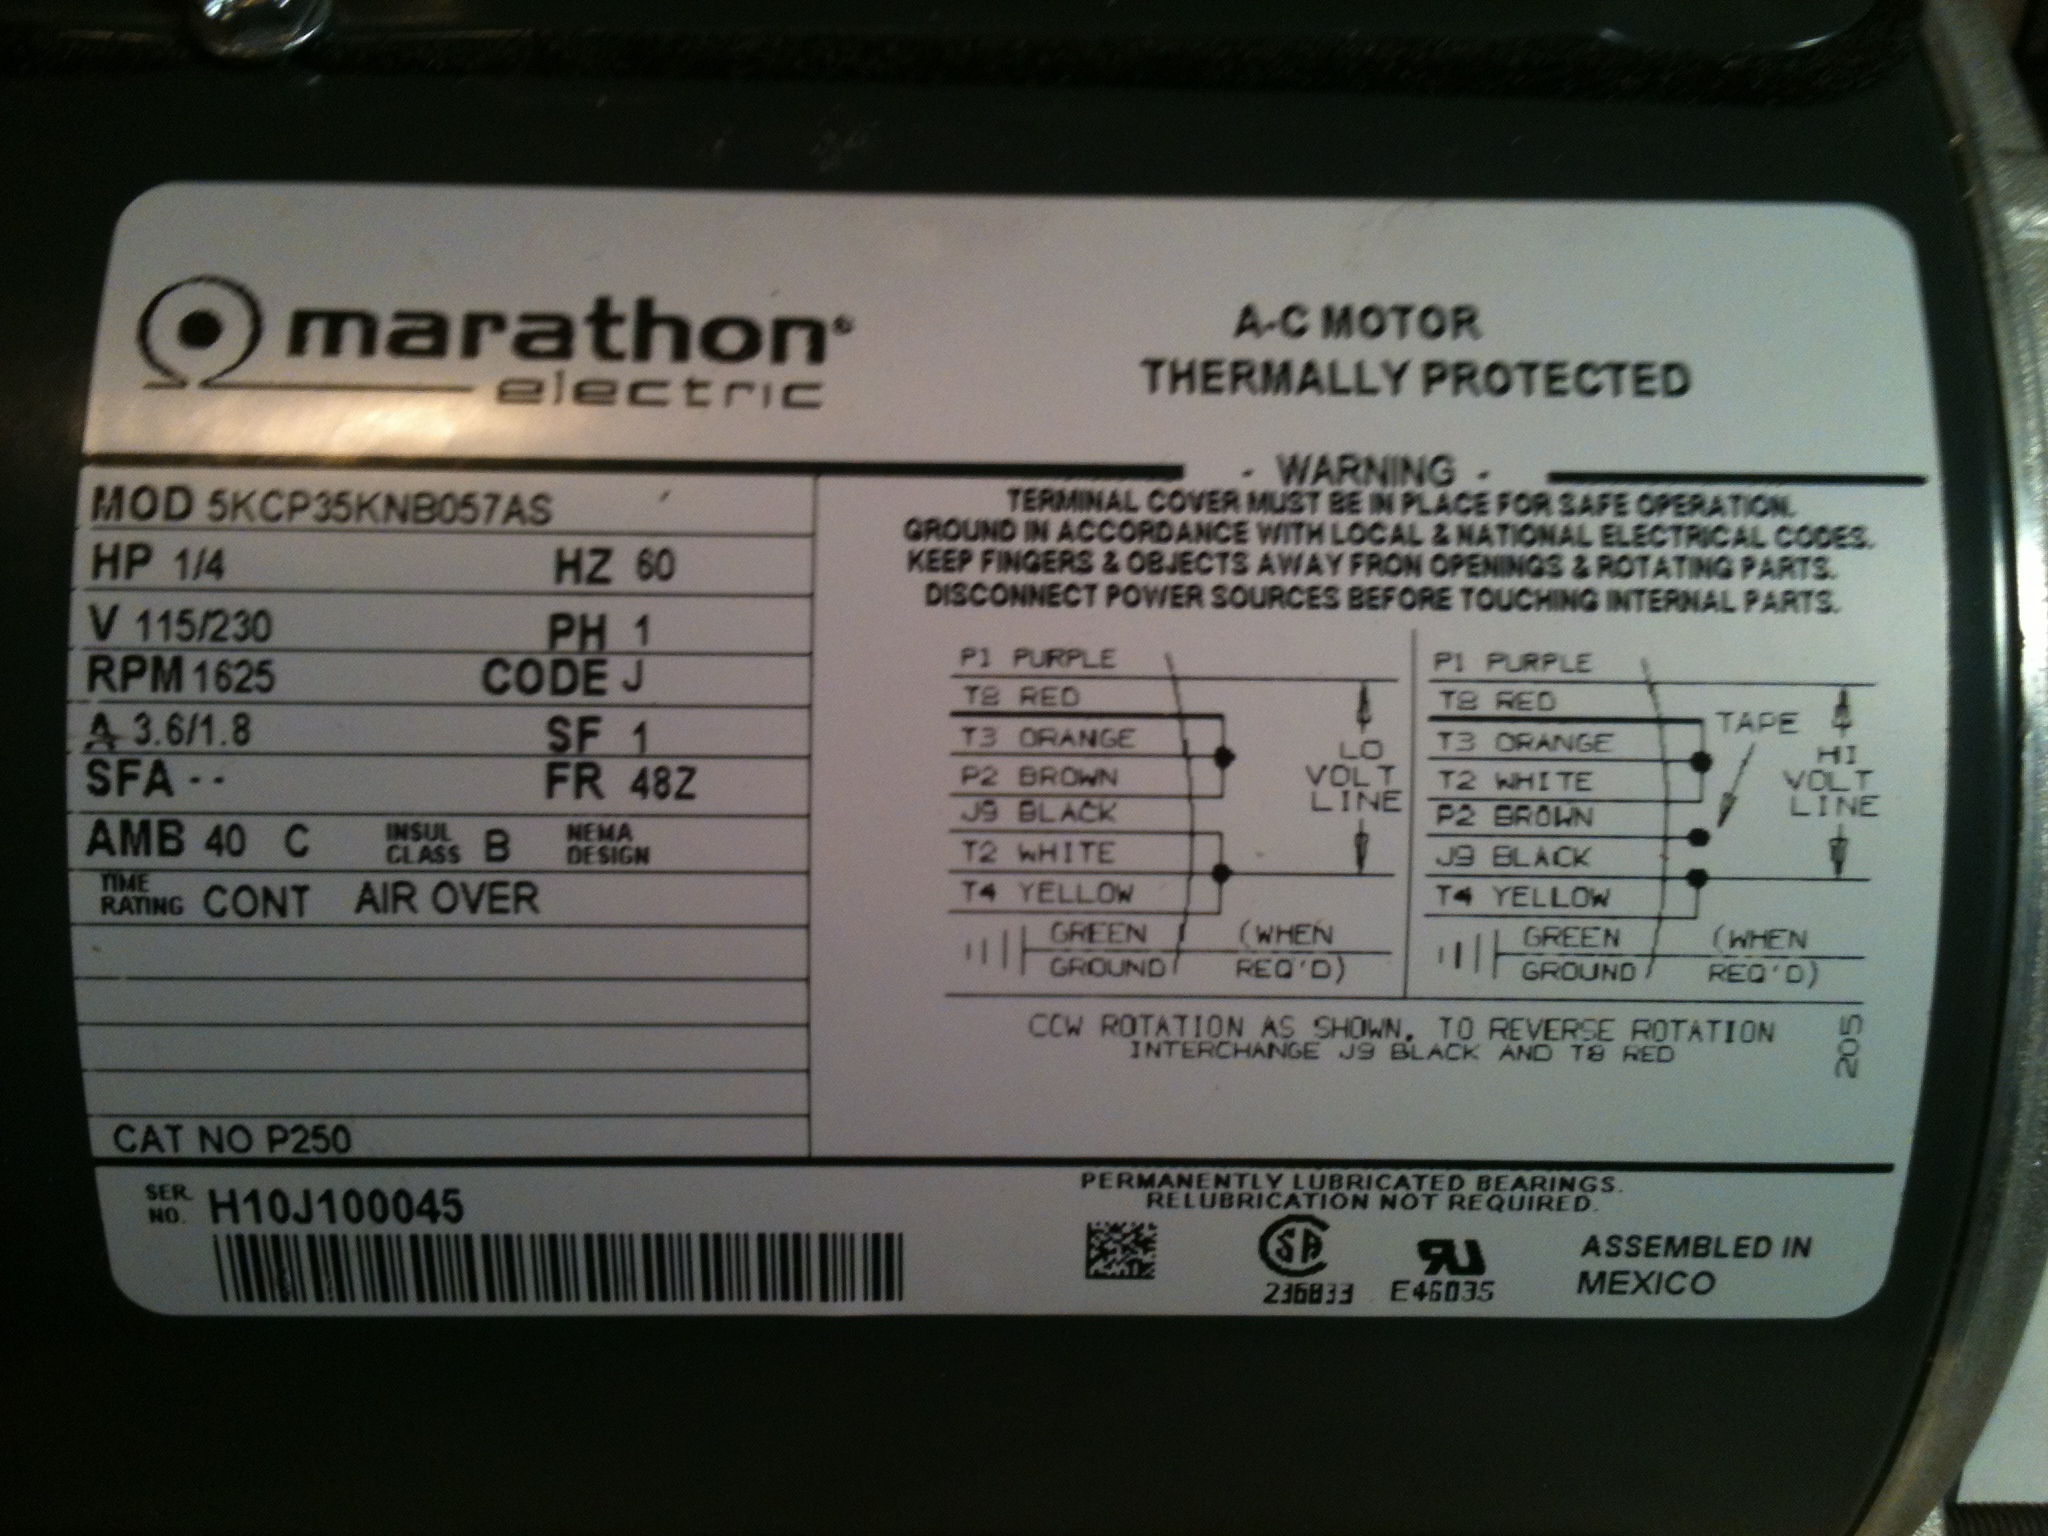 2012 01 24_021217_marathonmotor i just bought a marathon electric ac motor, hp 1 4 v 115 230 220 volt motor wiring diagram at mifinder.co